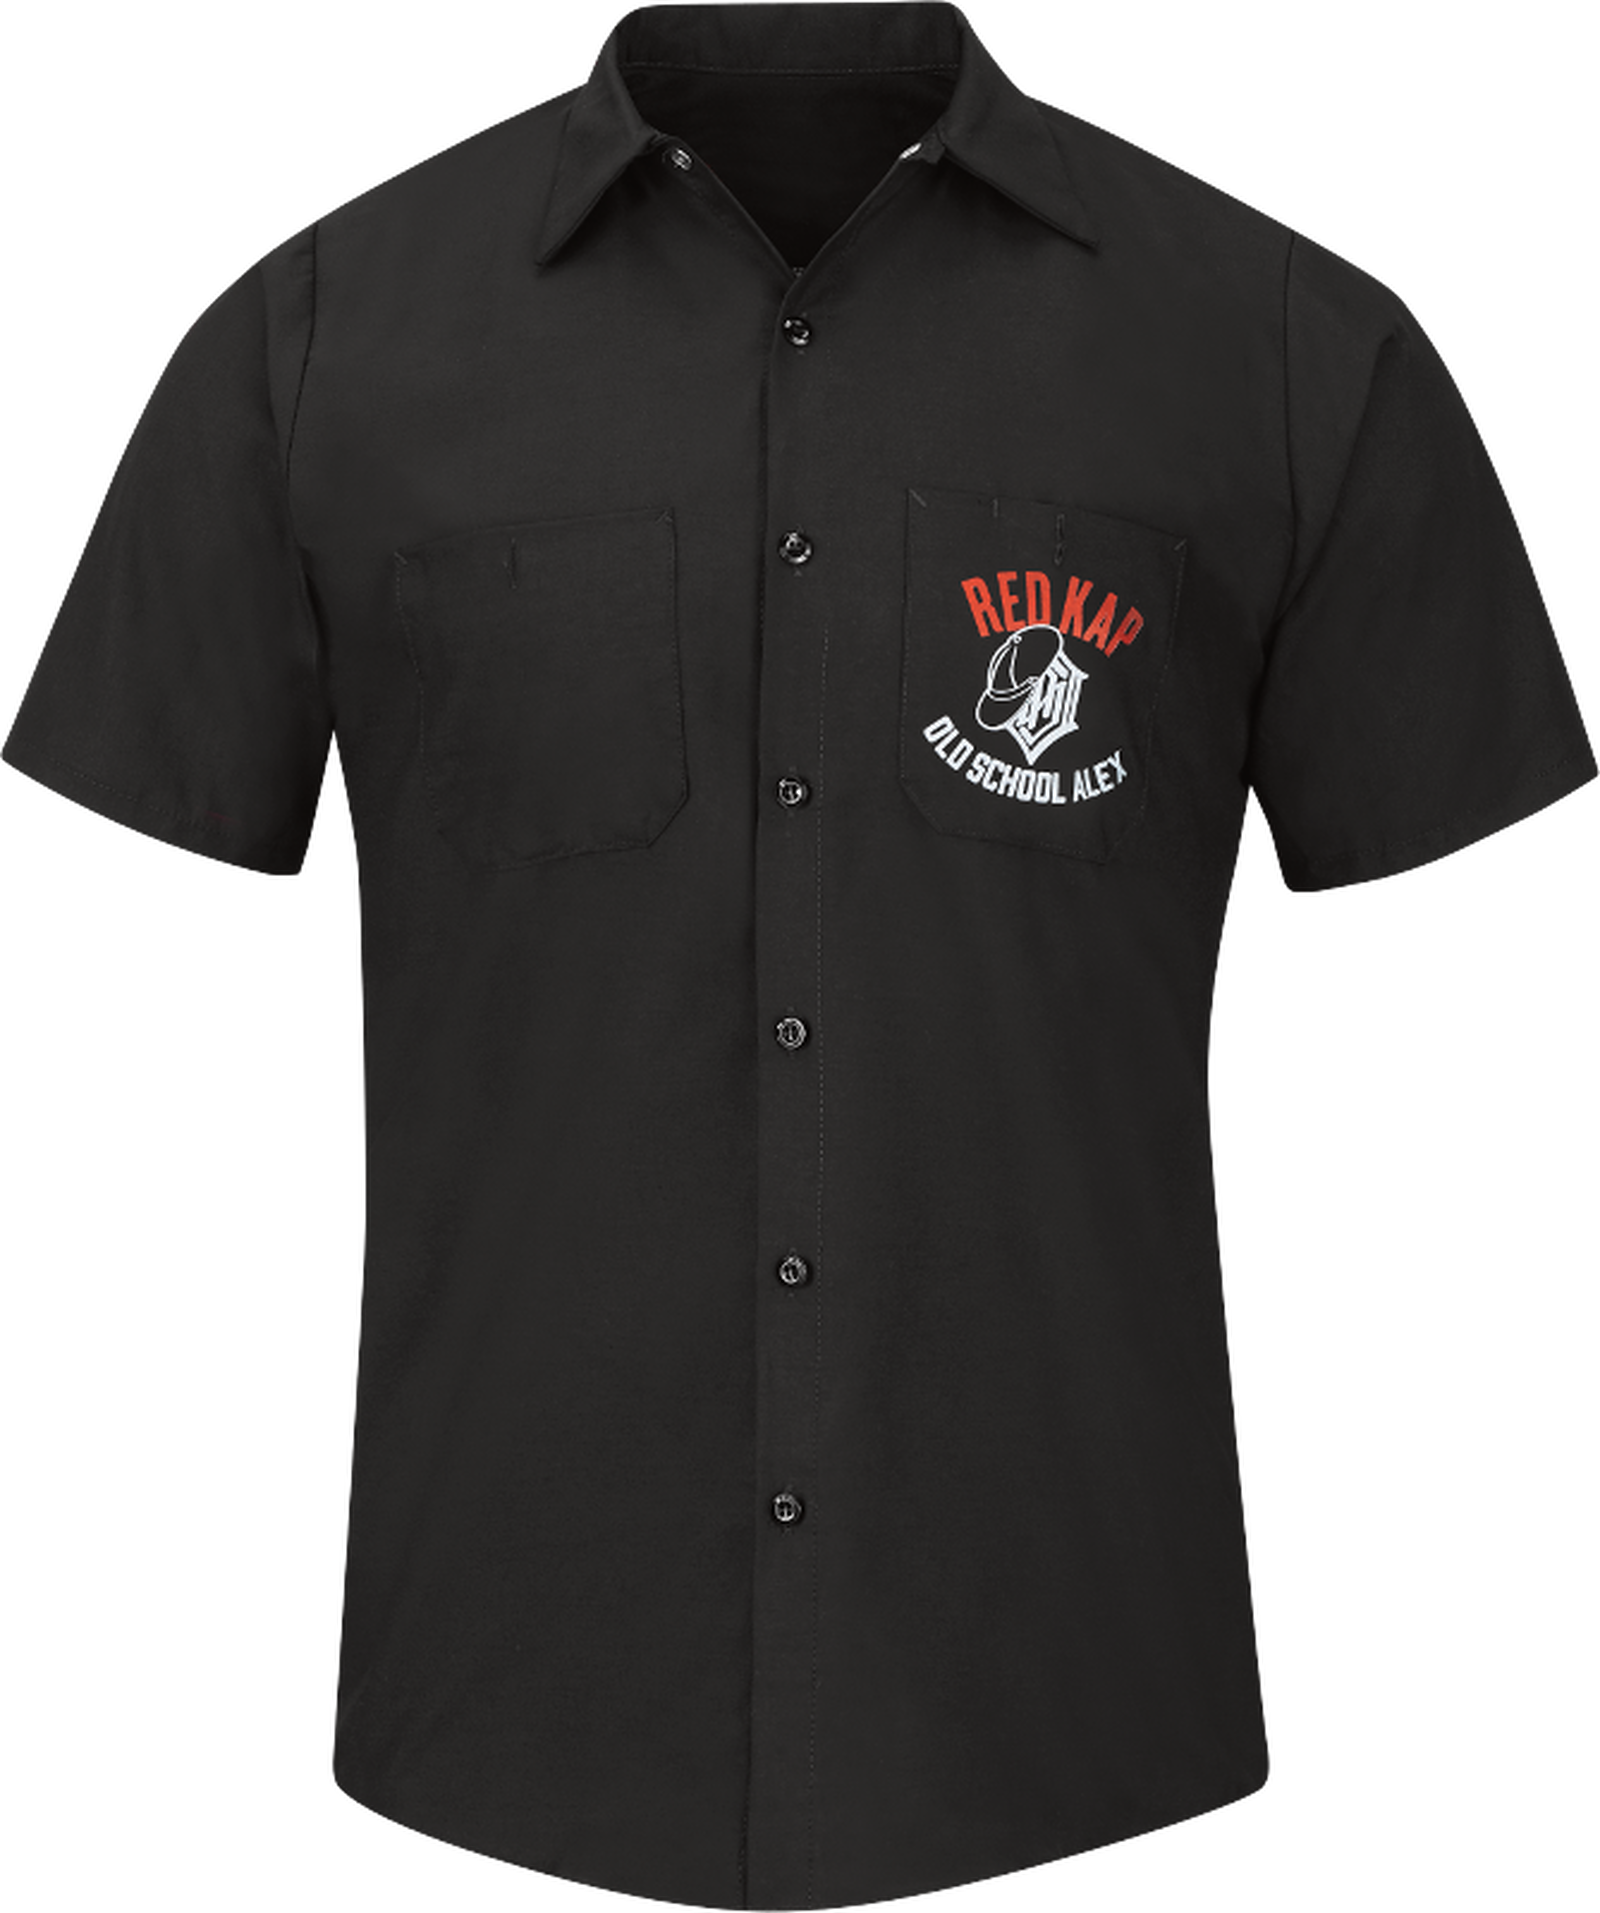 Men's Limited-Edition SEMA 2019 Work Shirt, co-designed by OldSchoolAlex